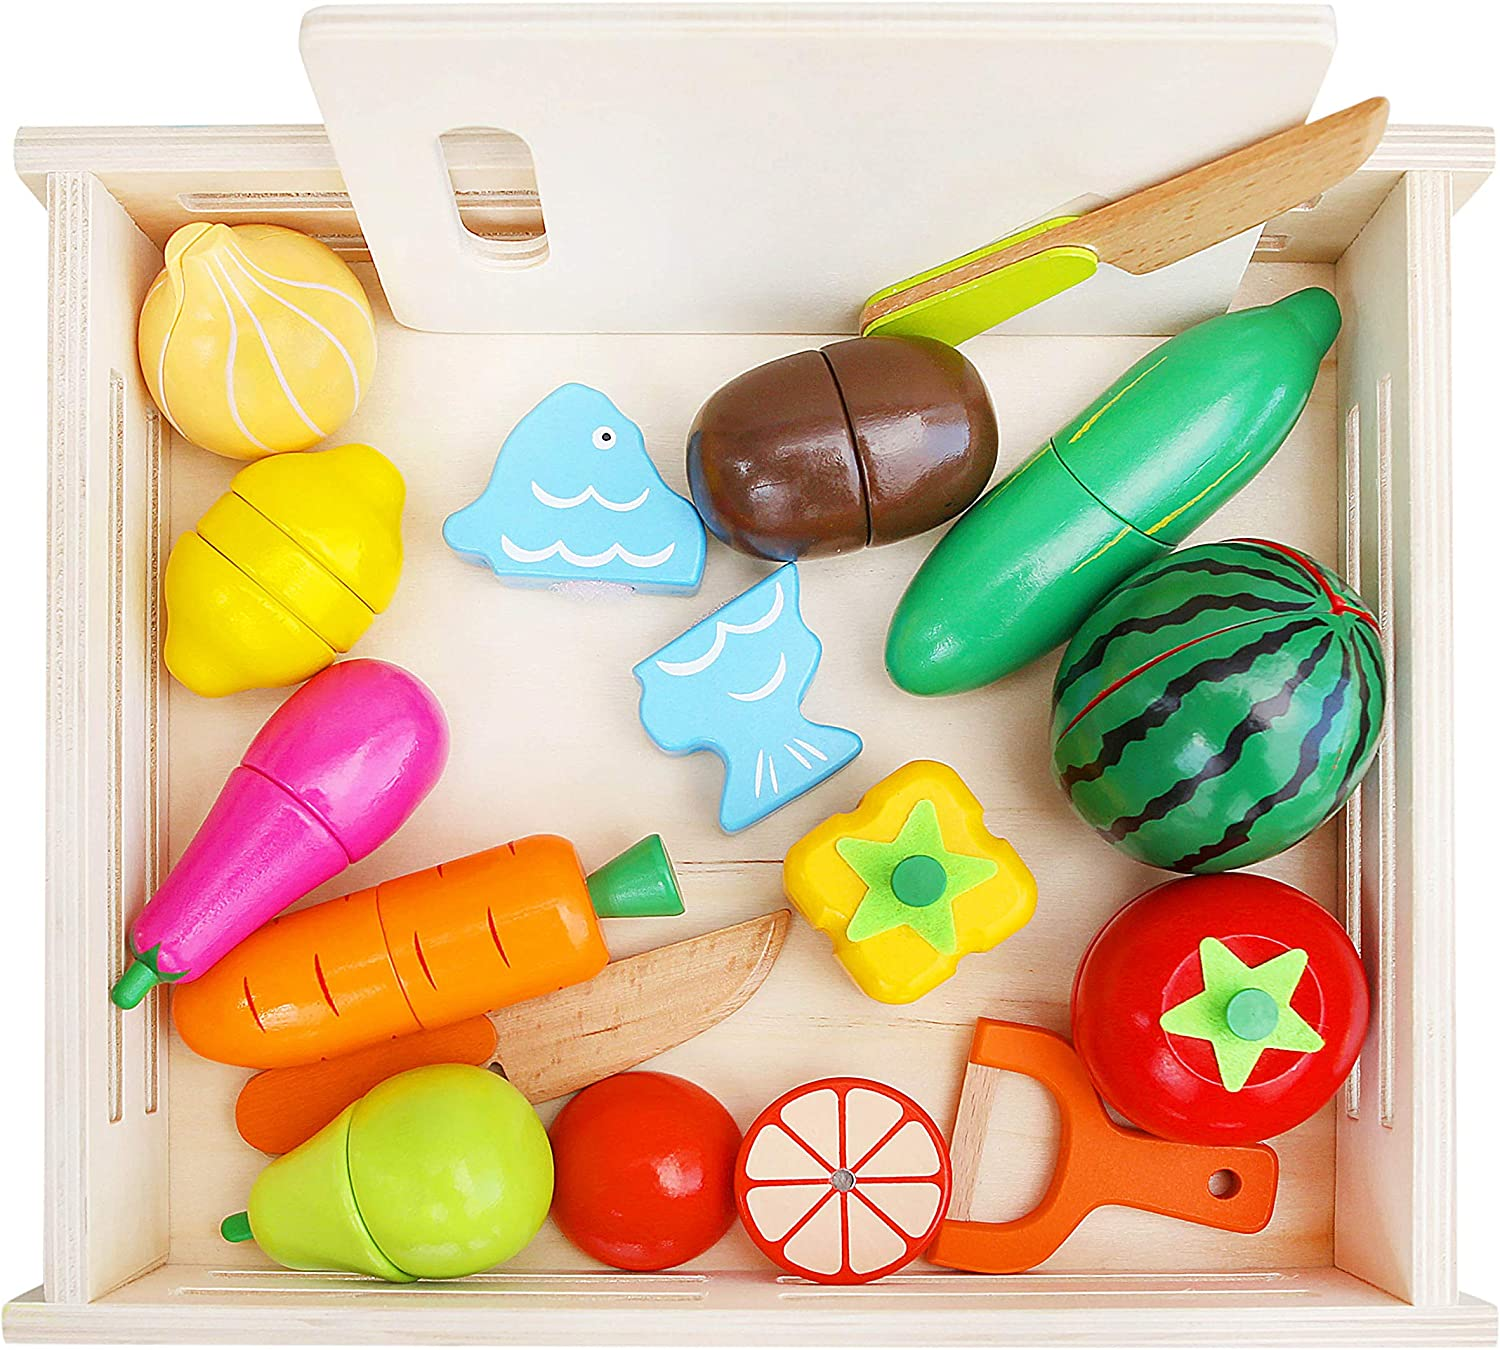 Wooden Toys Club Wood Play Food Toy Set 32 Pcs, Magnetic Pretend Kids Kitchen Fruits & Vegetables for Toddlers, Kids, Boys and Girls